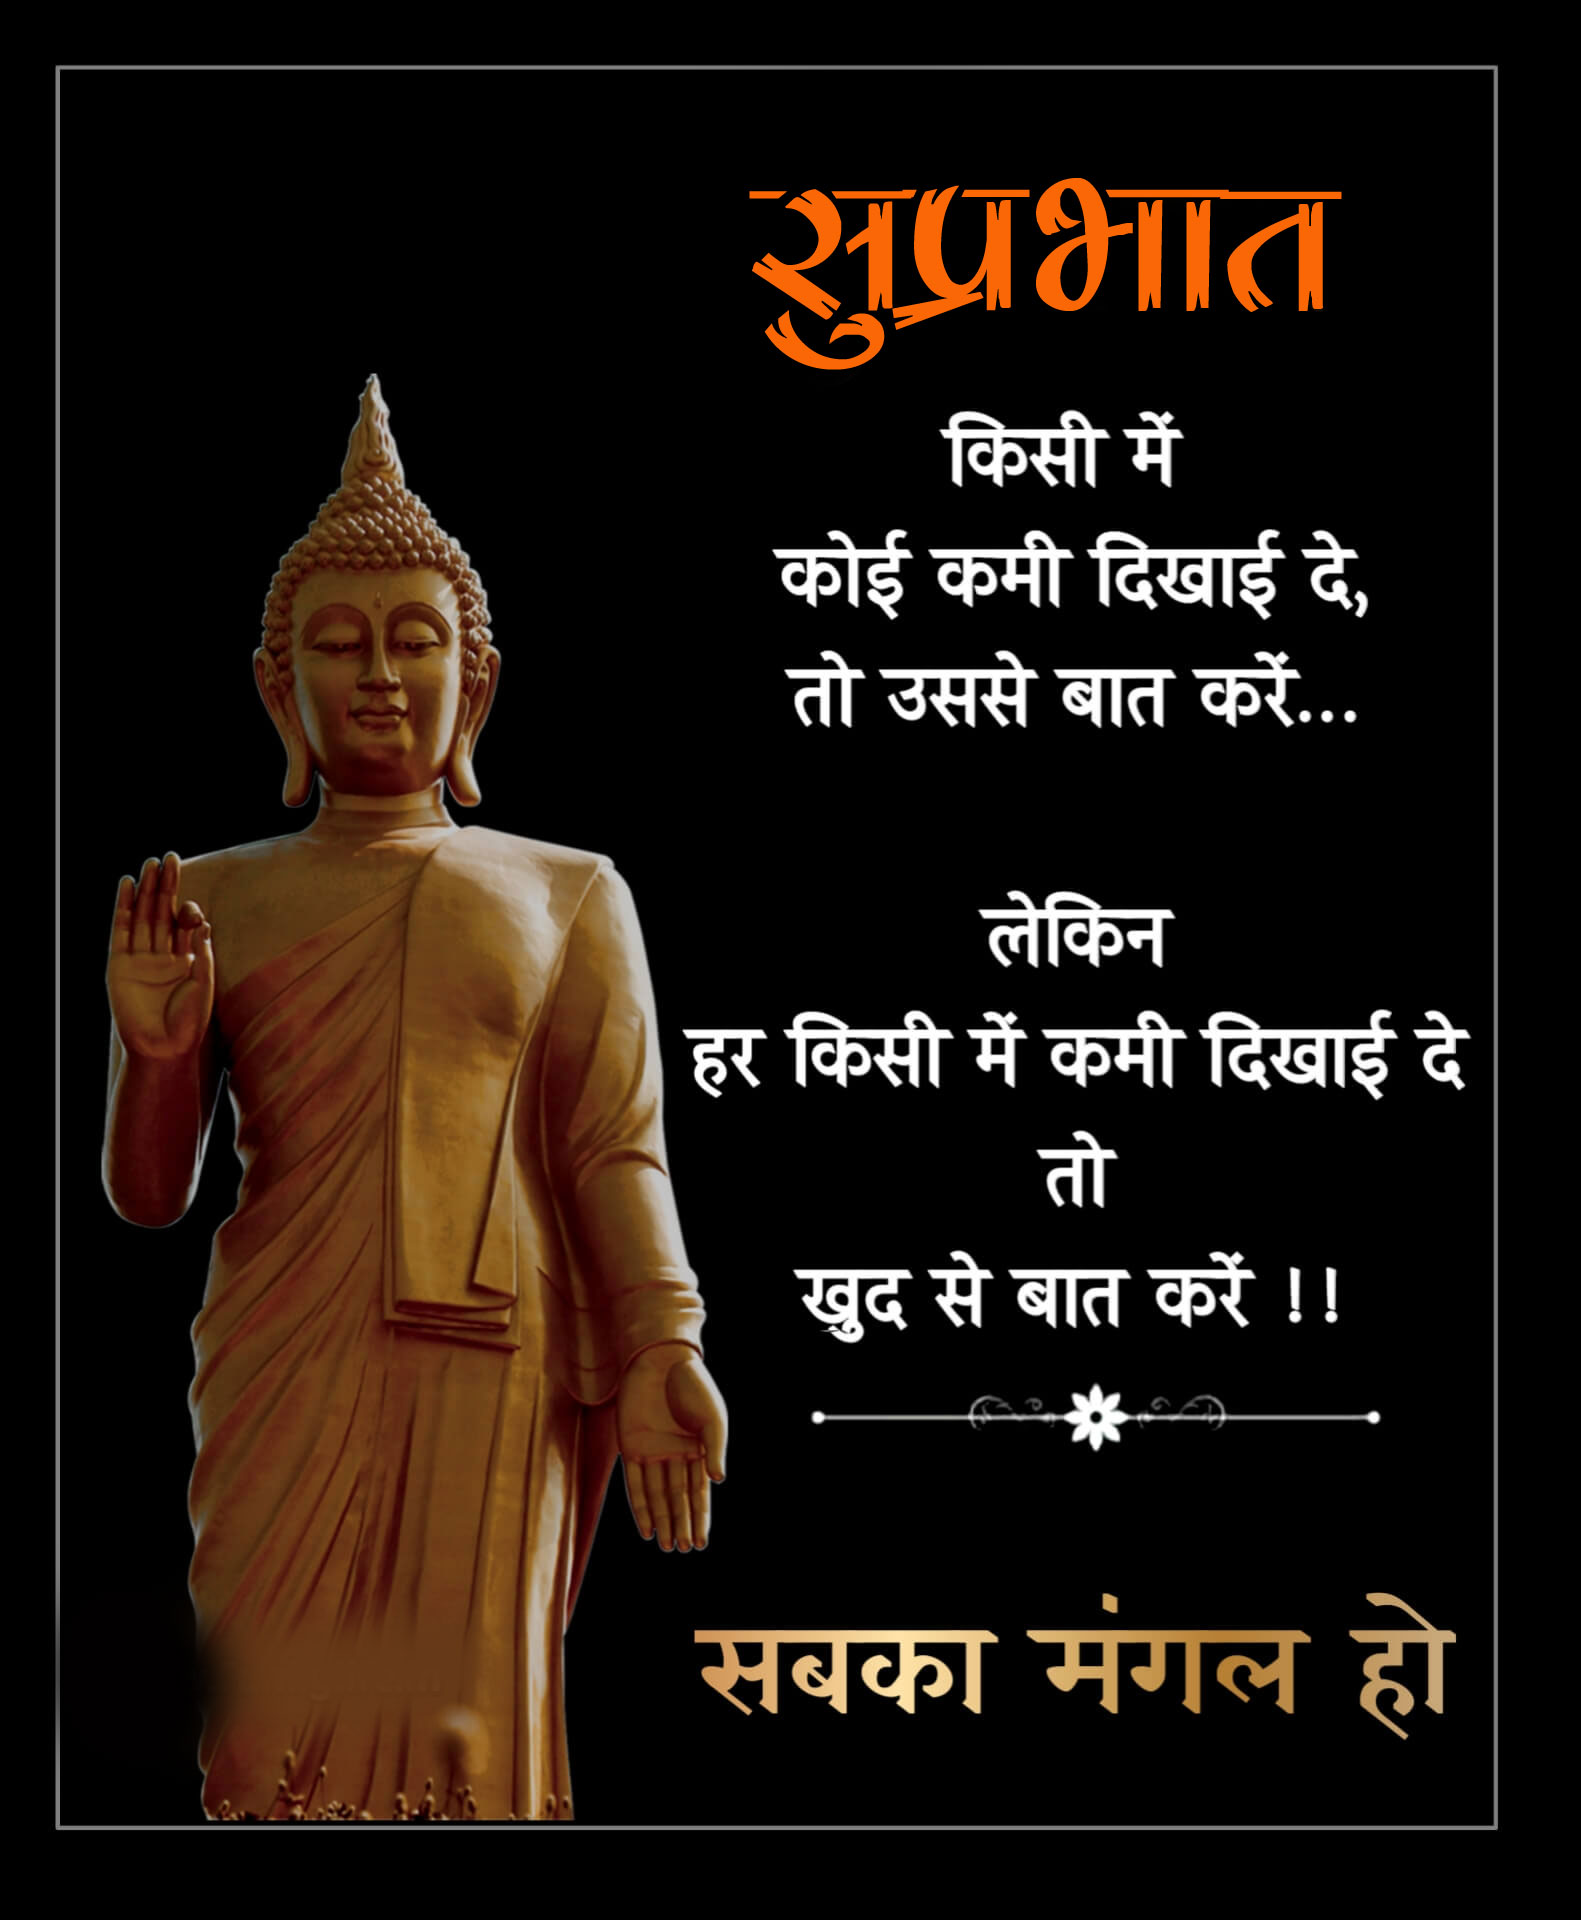 5612+ Suprabhat Images for Whatsapp in Hindi